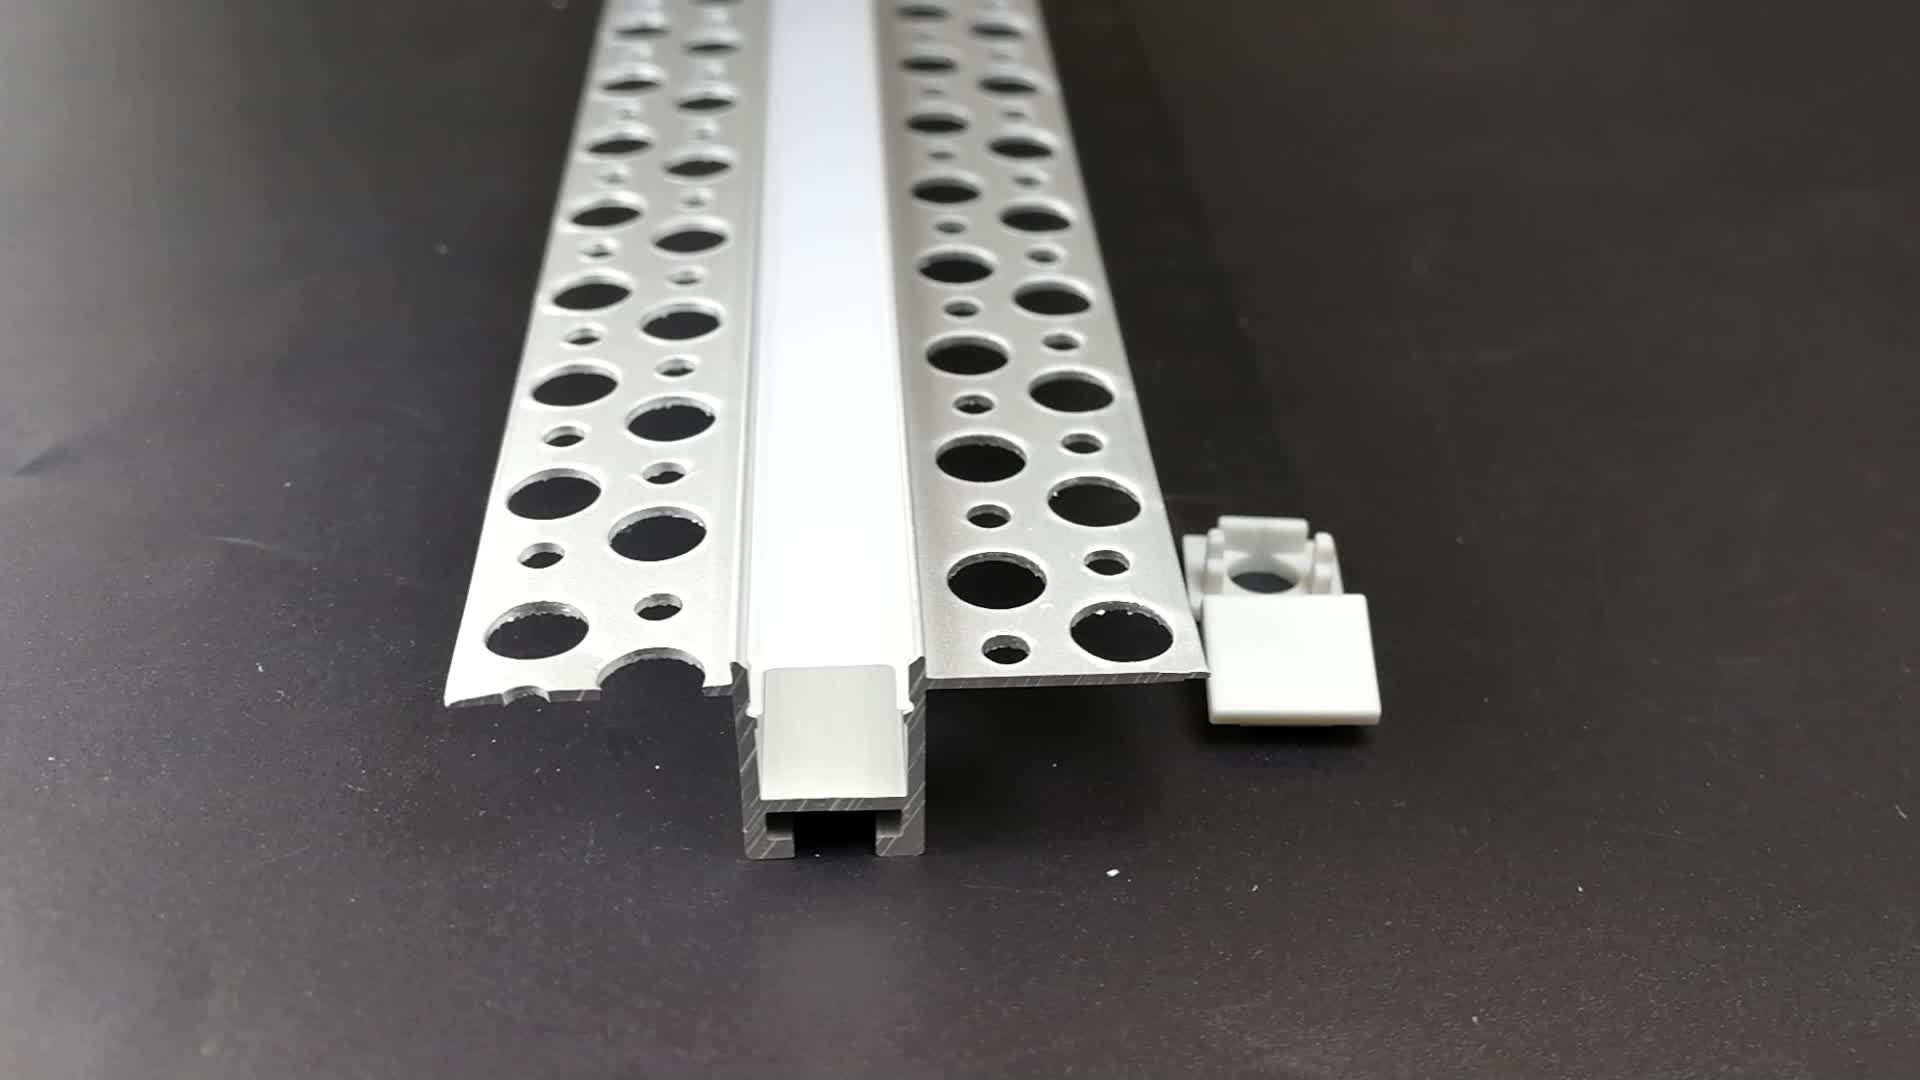 Drywall Surface mounted led strip aluminium profile and Flat T extrusion channel for ceiling or wall lights